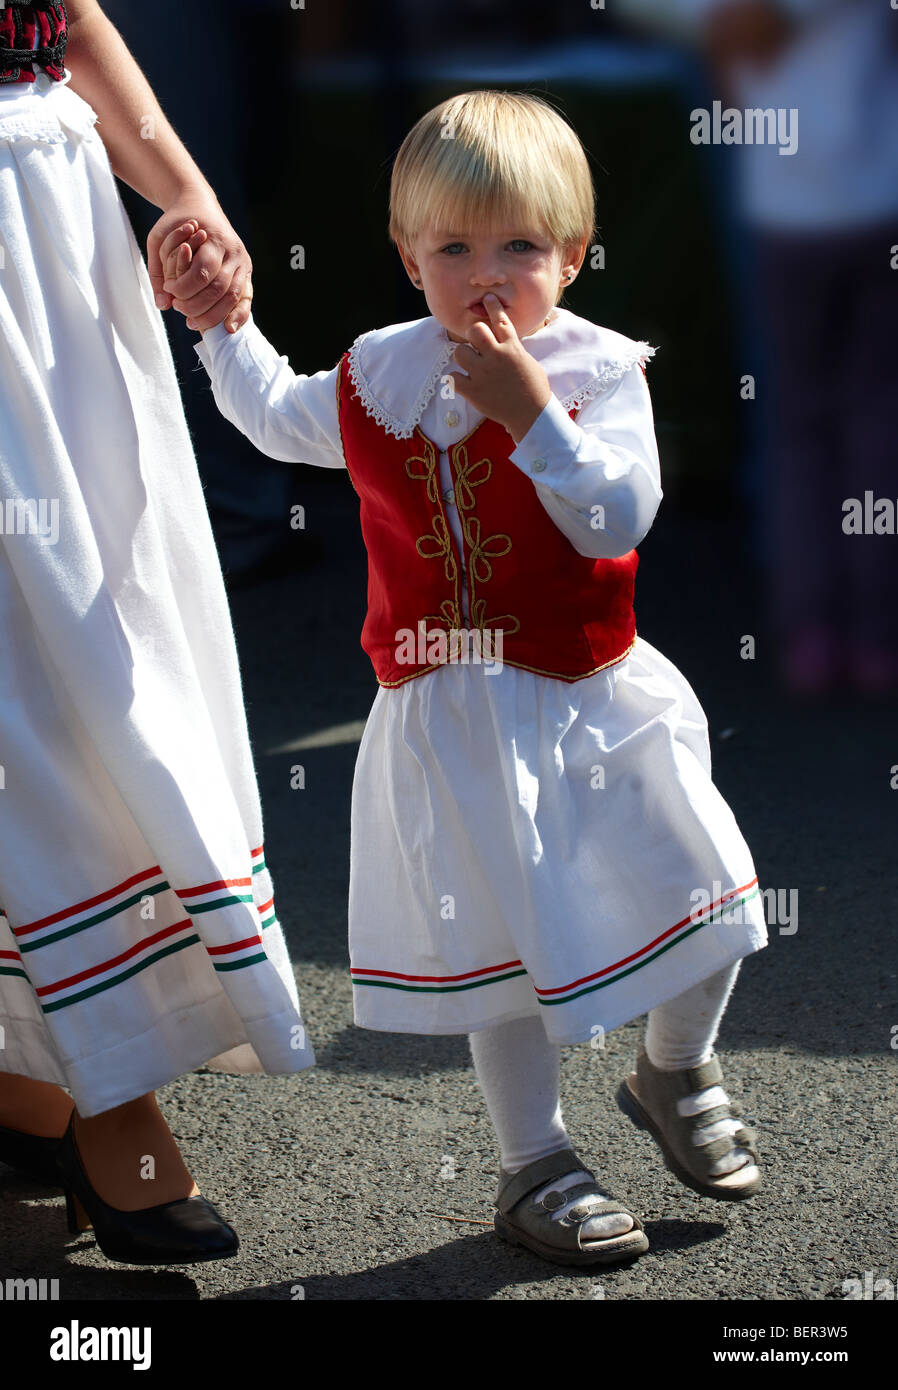 Jeune fille en costume traditionnel - Hongrie Photo Stock